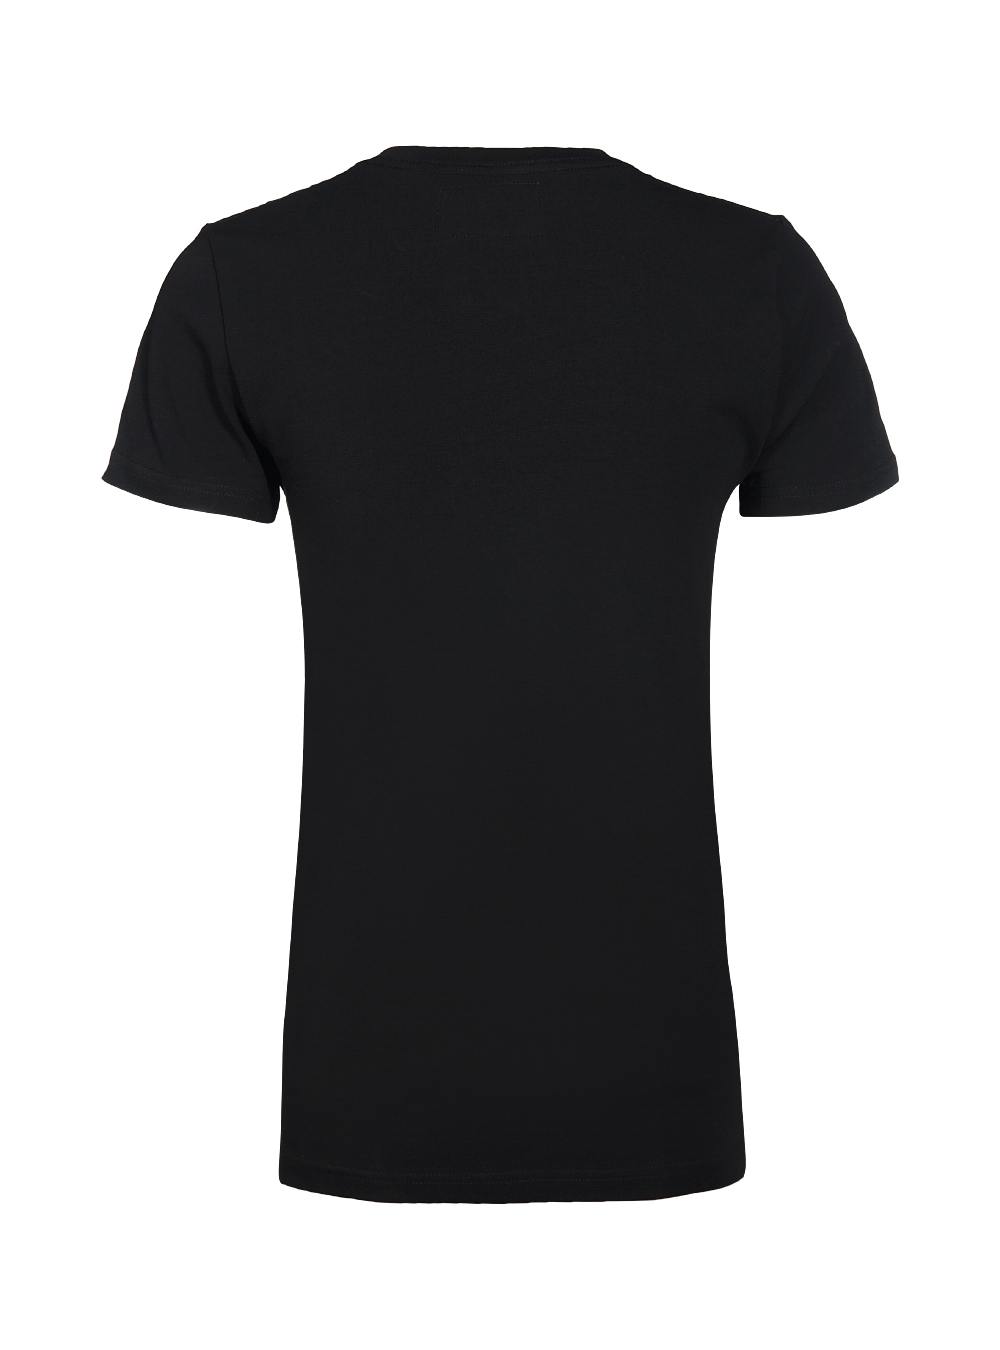 All Women Womens Clothing T